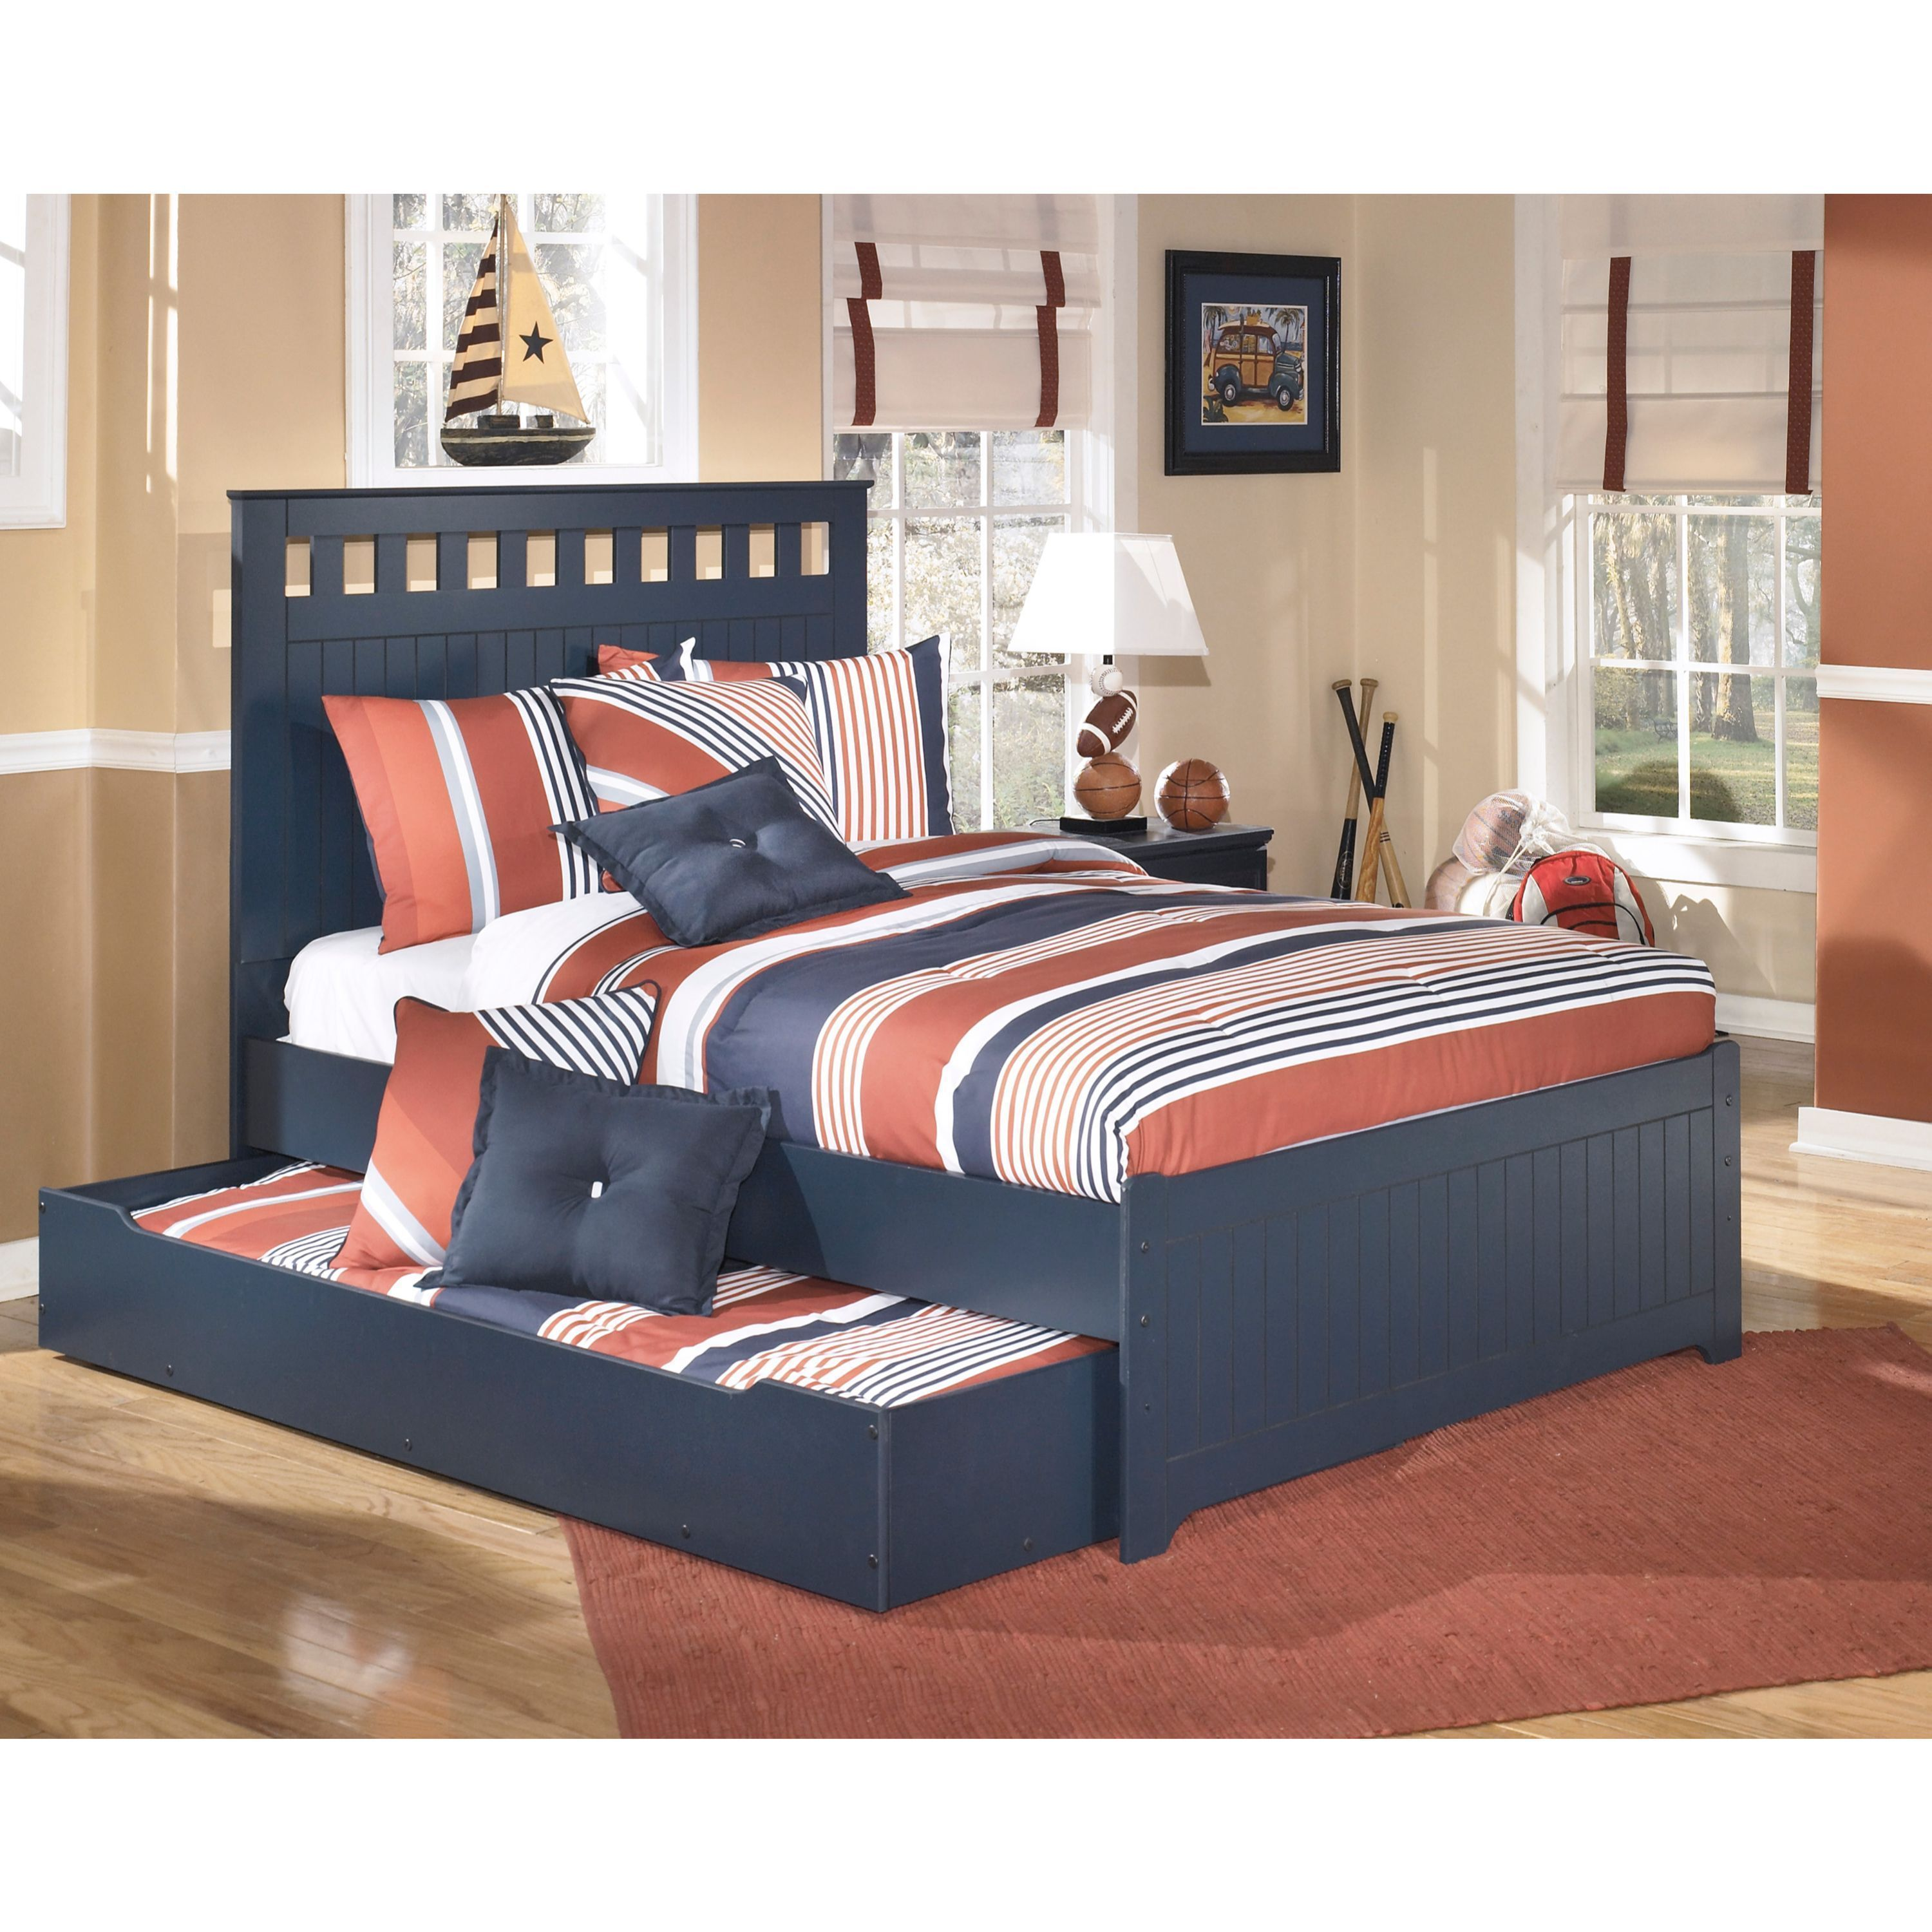 co trundle s twin children trundles by fancy lou simple bed boxes toy with the stroage company beautiful under drawers lovely furniture